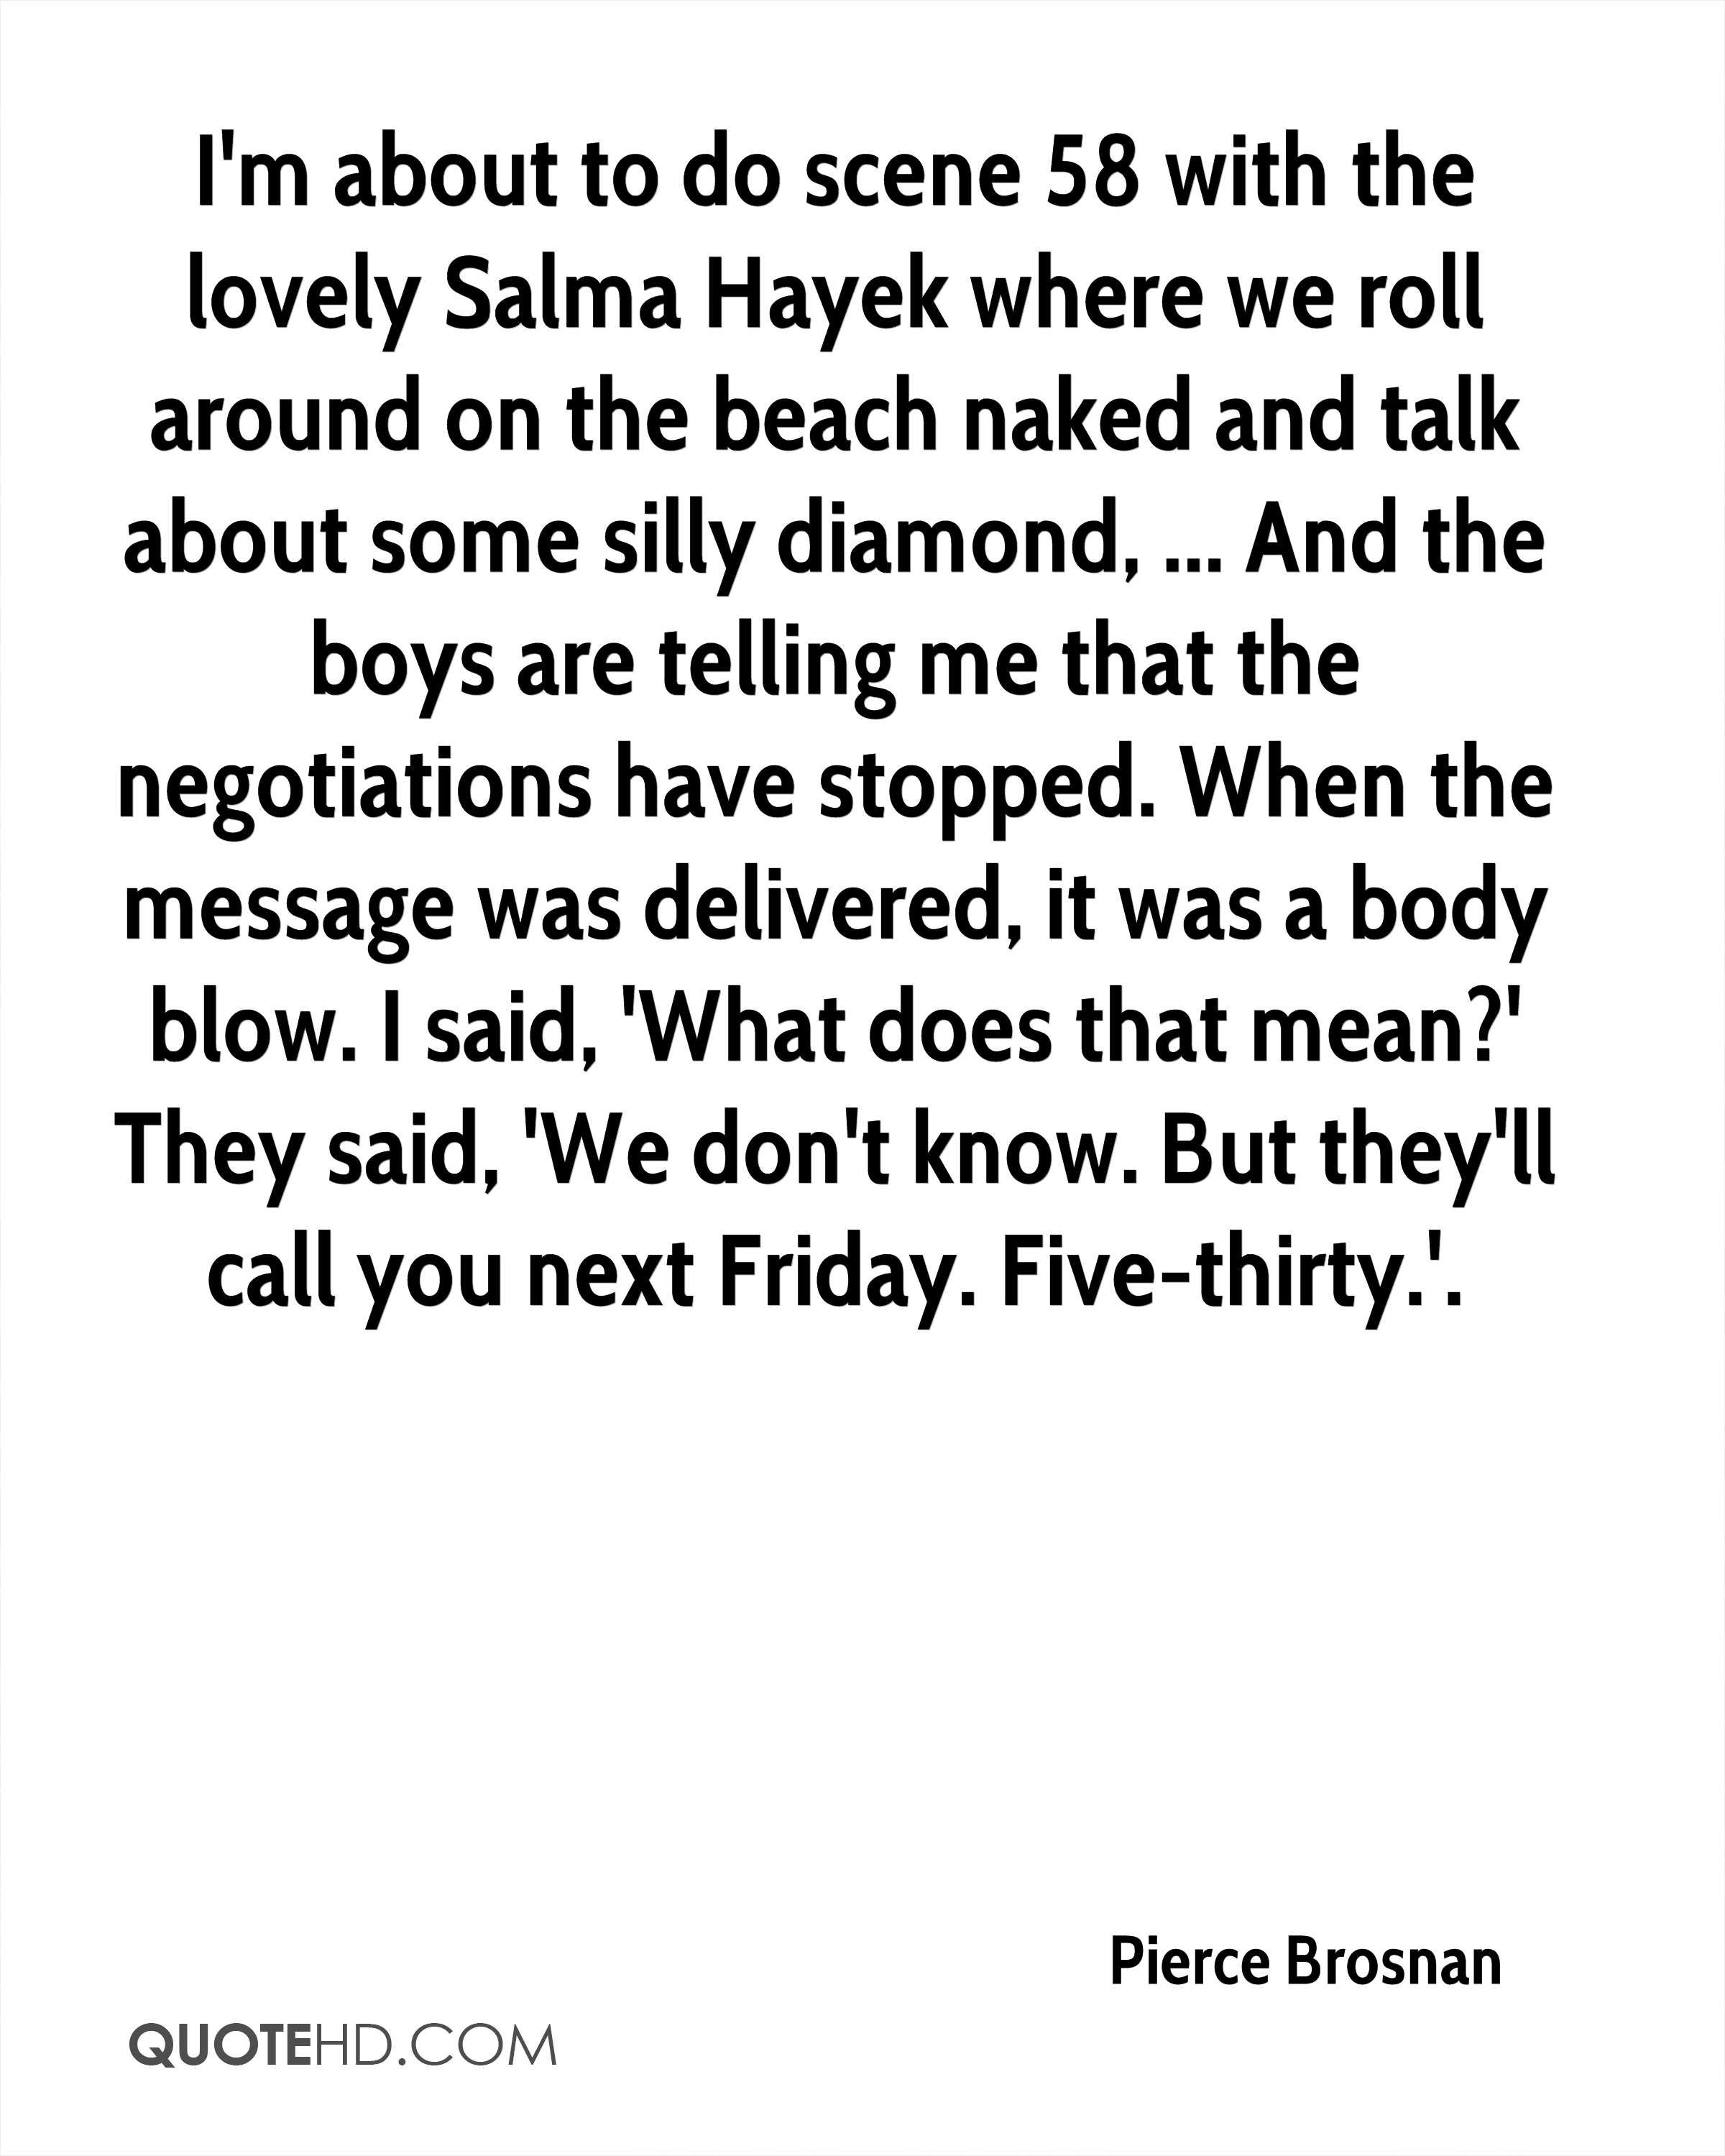 I'm about to do scene 58 with the lovely Salma Hayek where we roll around on the beach naked and talk about some silly diamond, ... And the boys are telling me that the negotiations have stopped. When the message was delivered, it was a body blow. I said, 'What does that mean?' They said, 'We don't know. But they'll call you next Friday. Five-thirty.'.